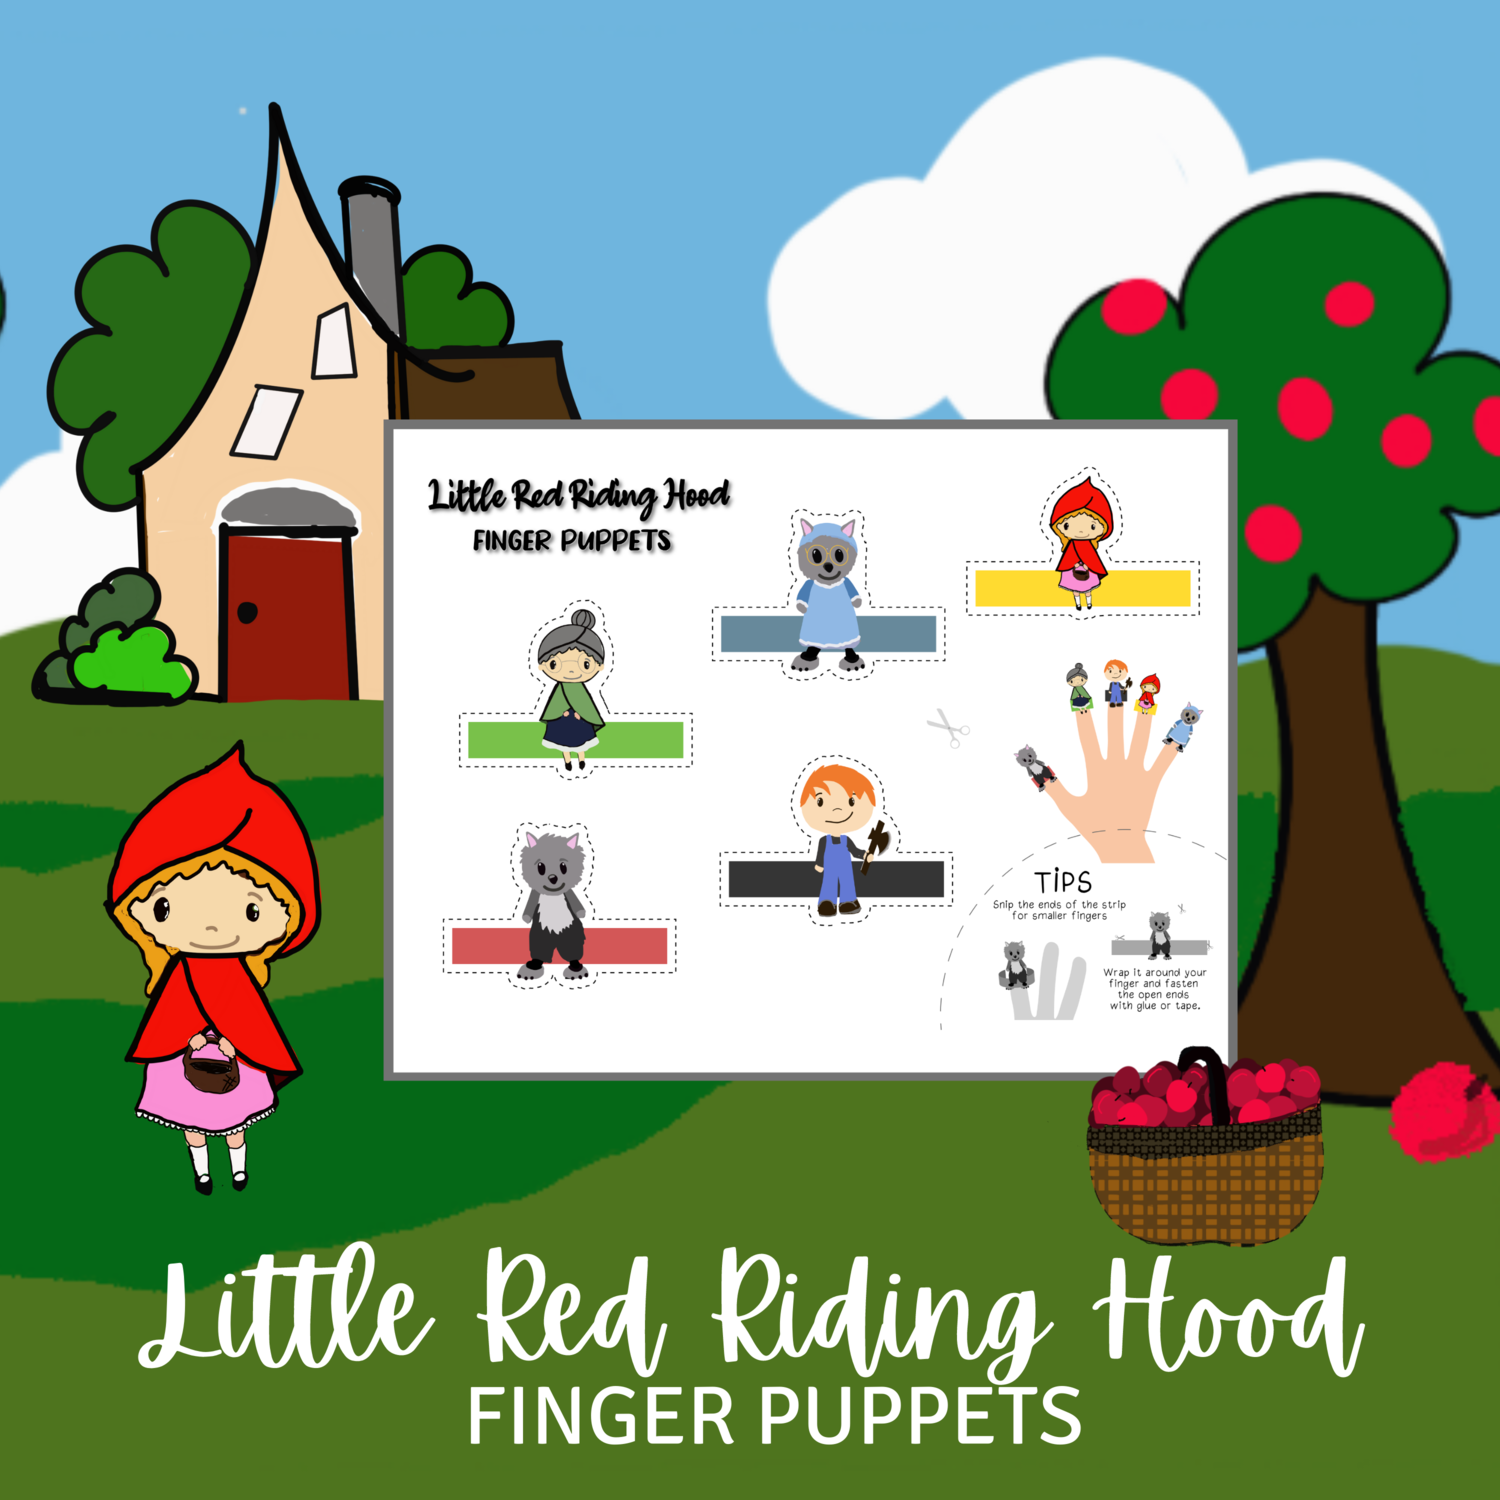 Free Printable Finger Puppets - Little Red Riding Hood